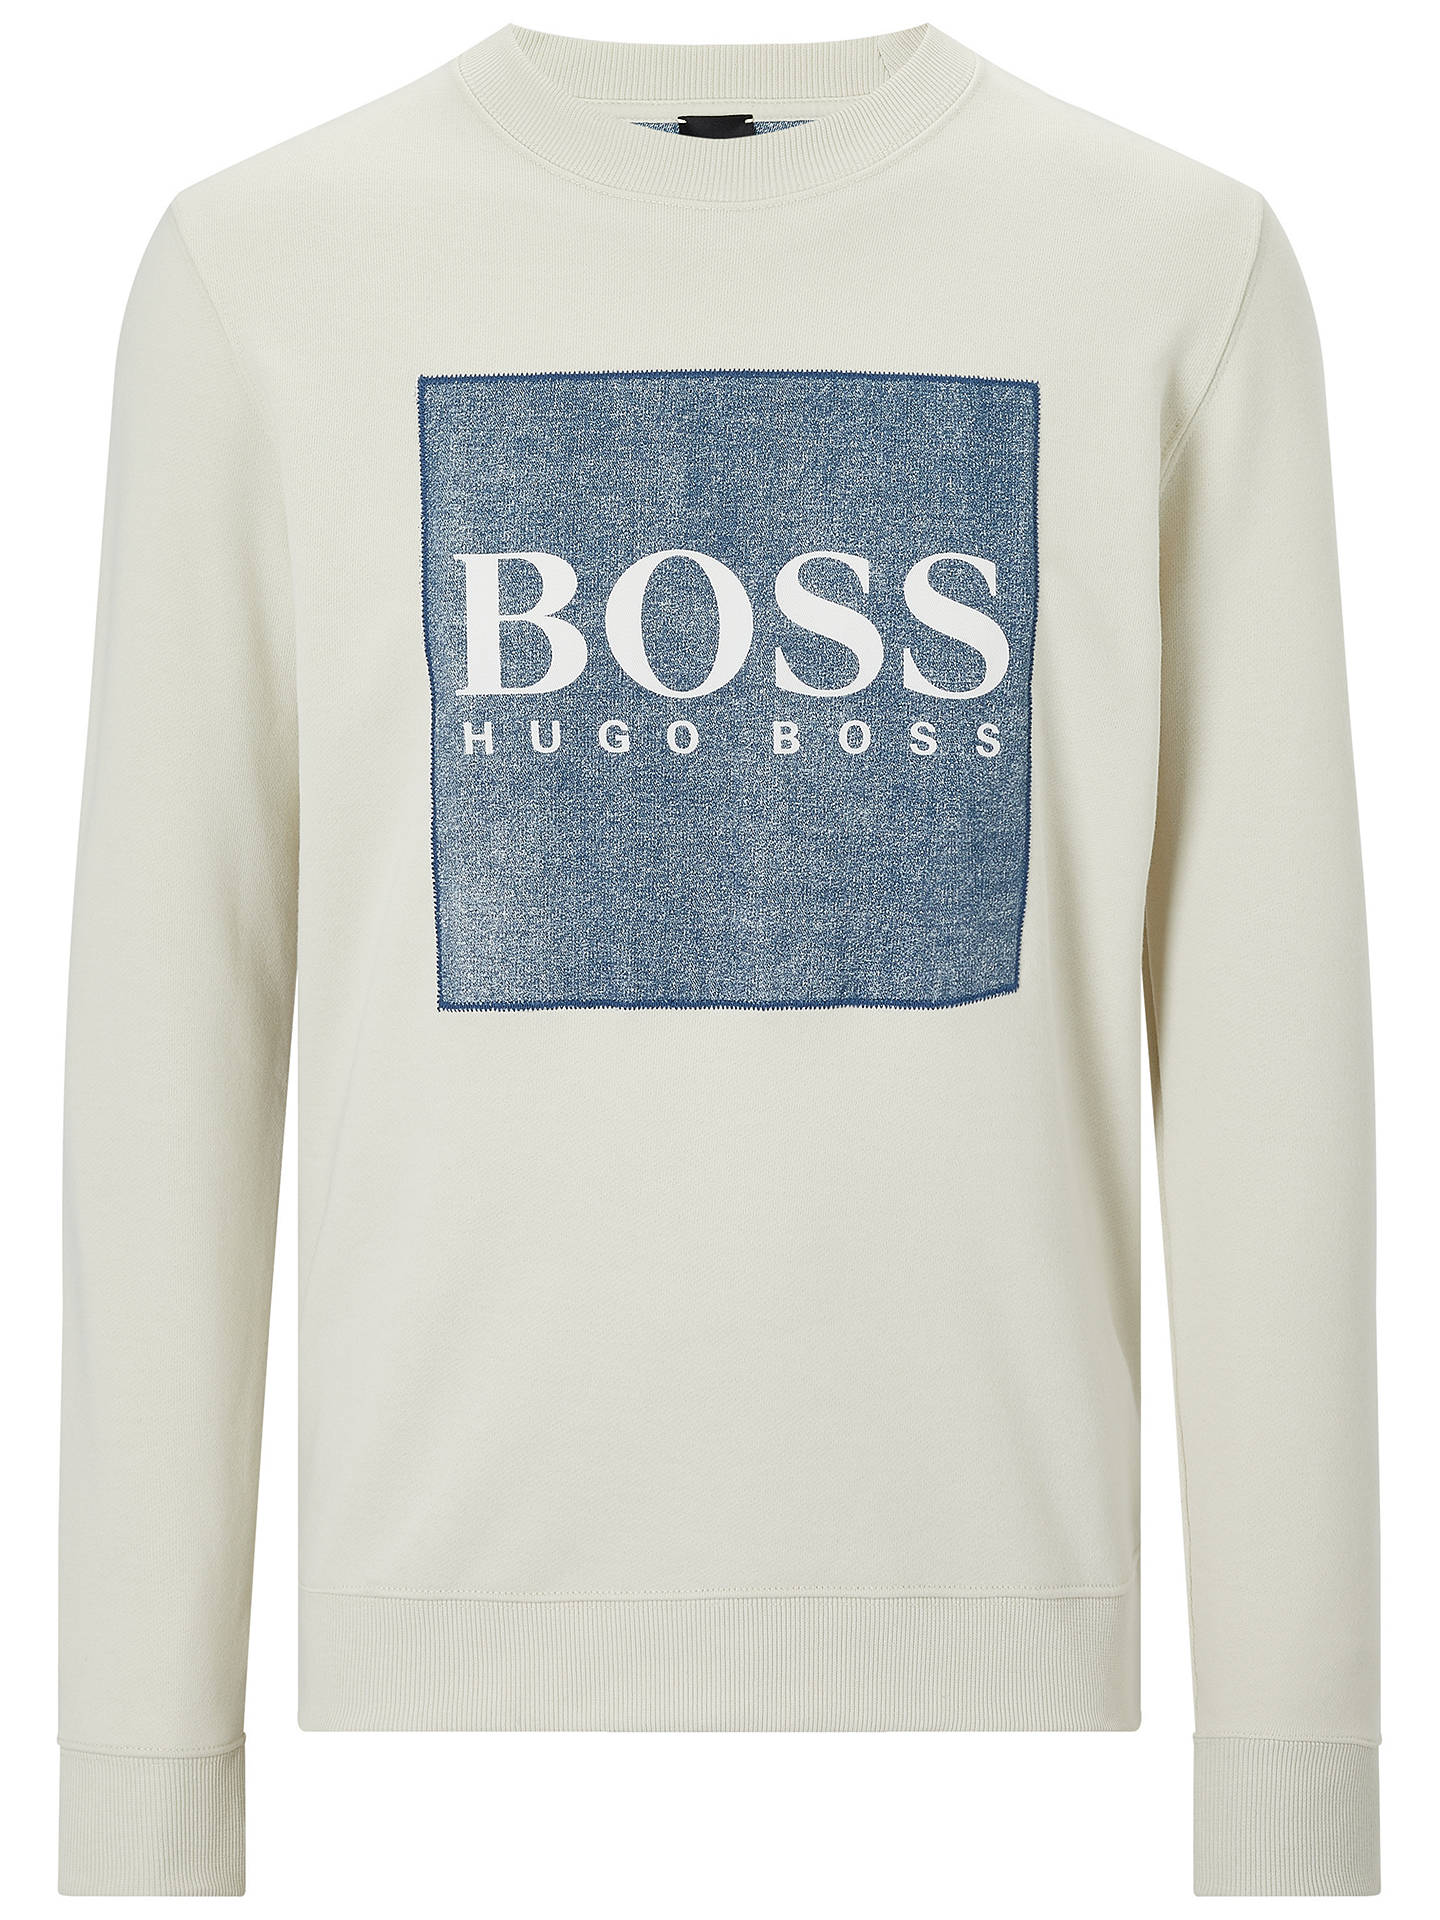 Buy BOSS Wedford Logo Print Sweatshirt, White, XXL Online at johnlewis.com